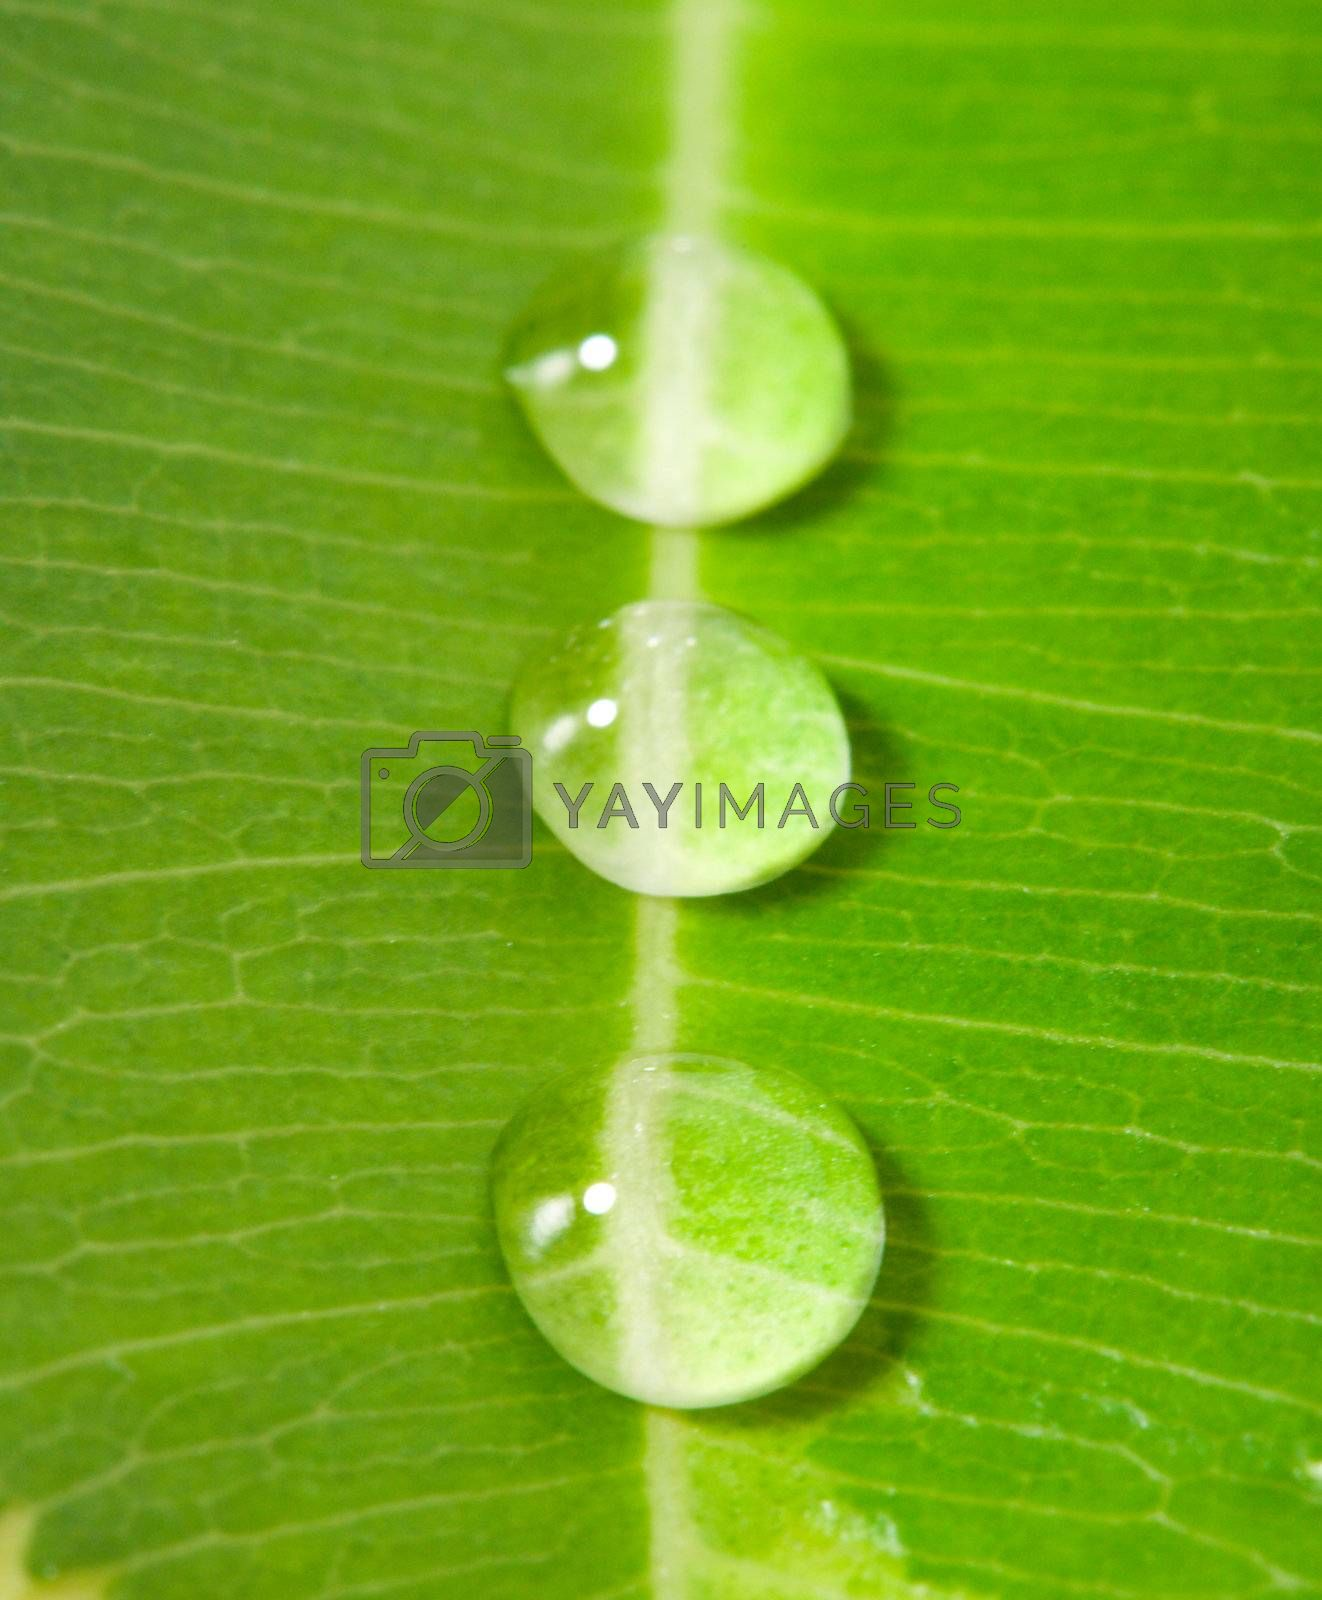 close-up three water drops on a green leaf